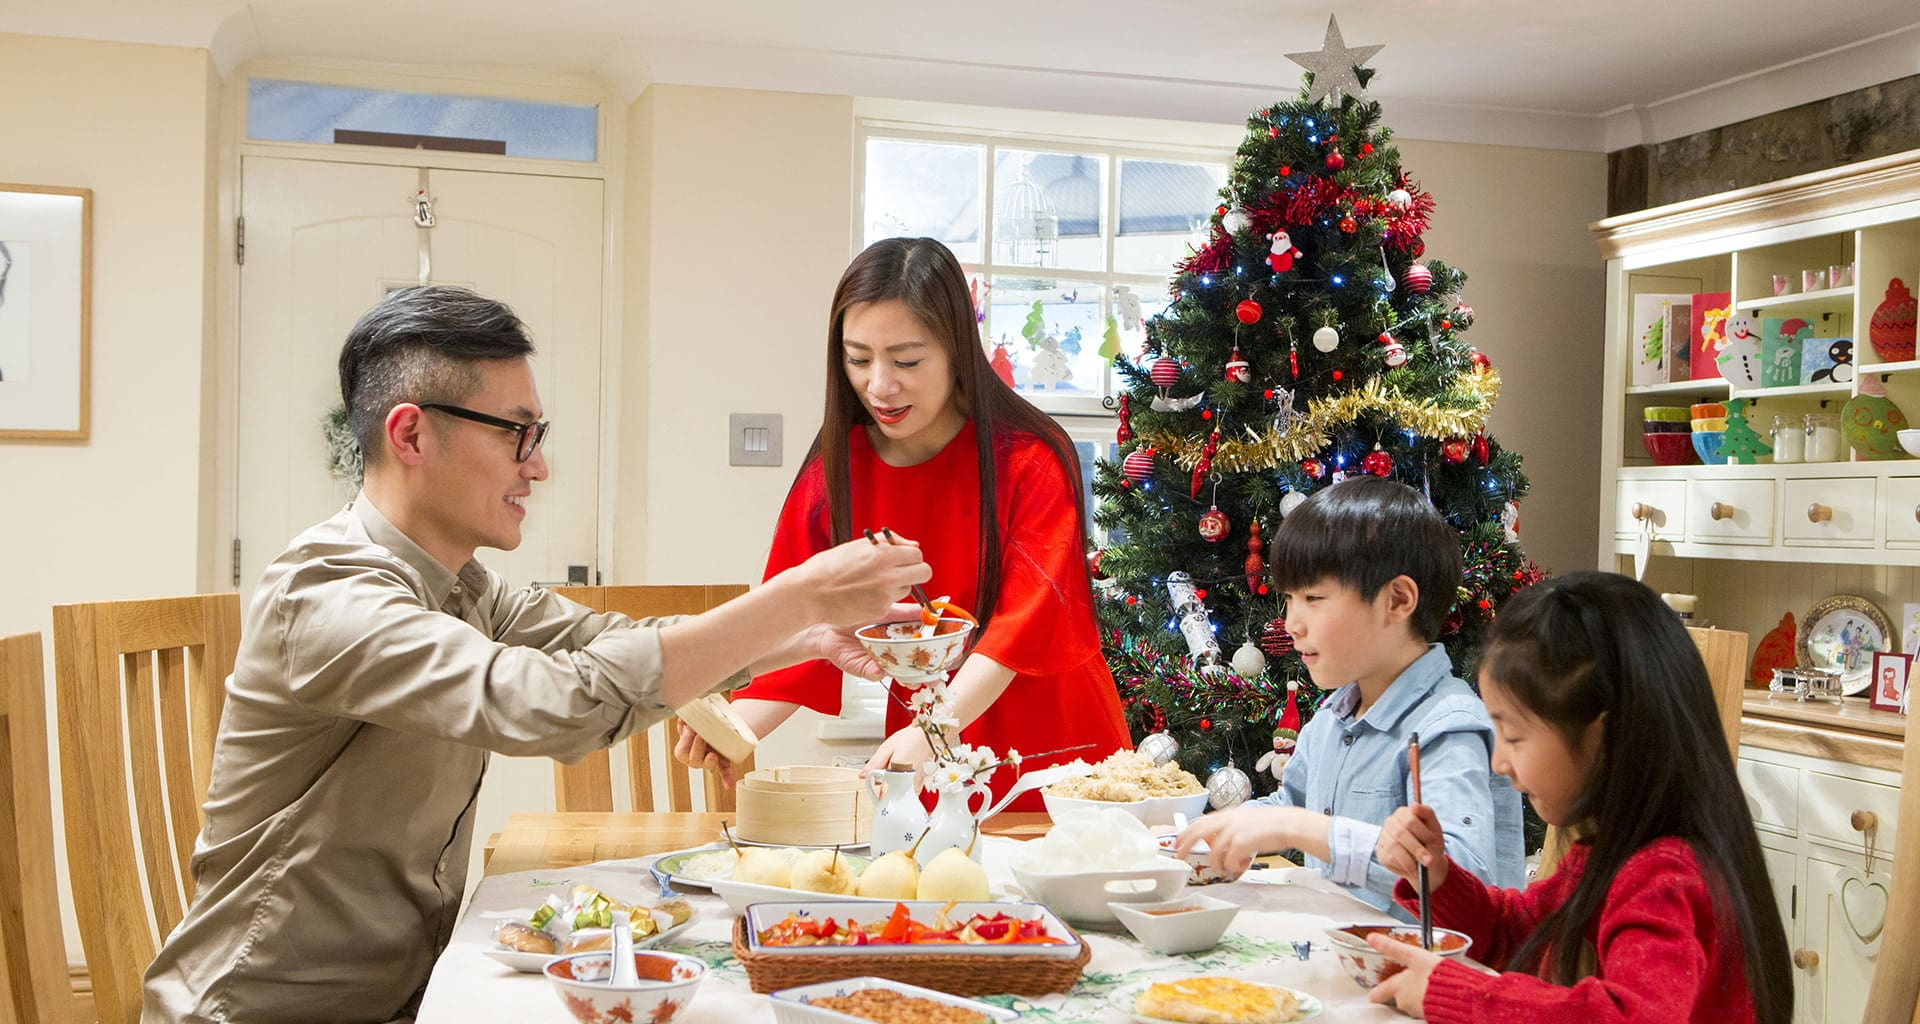 The Most Important Christian Family Traditions